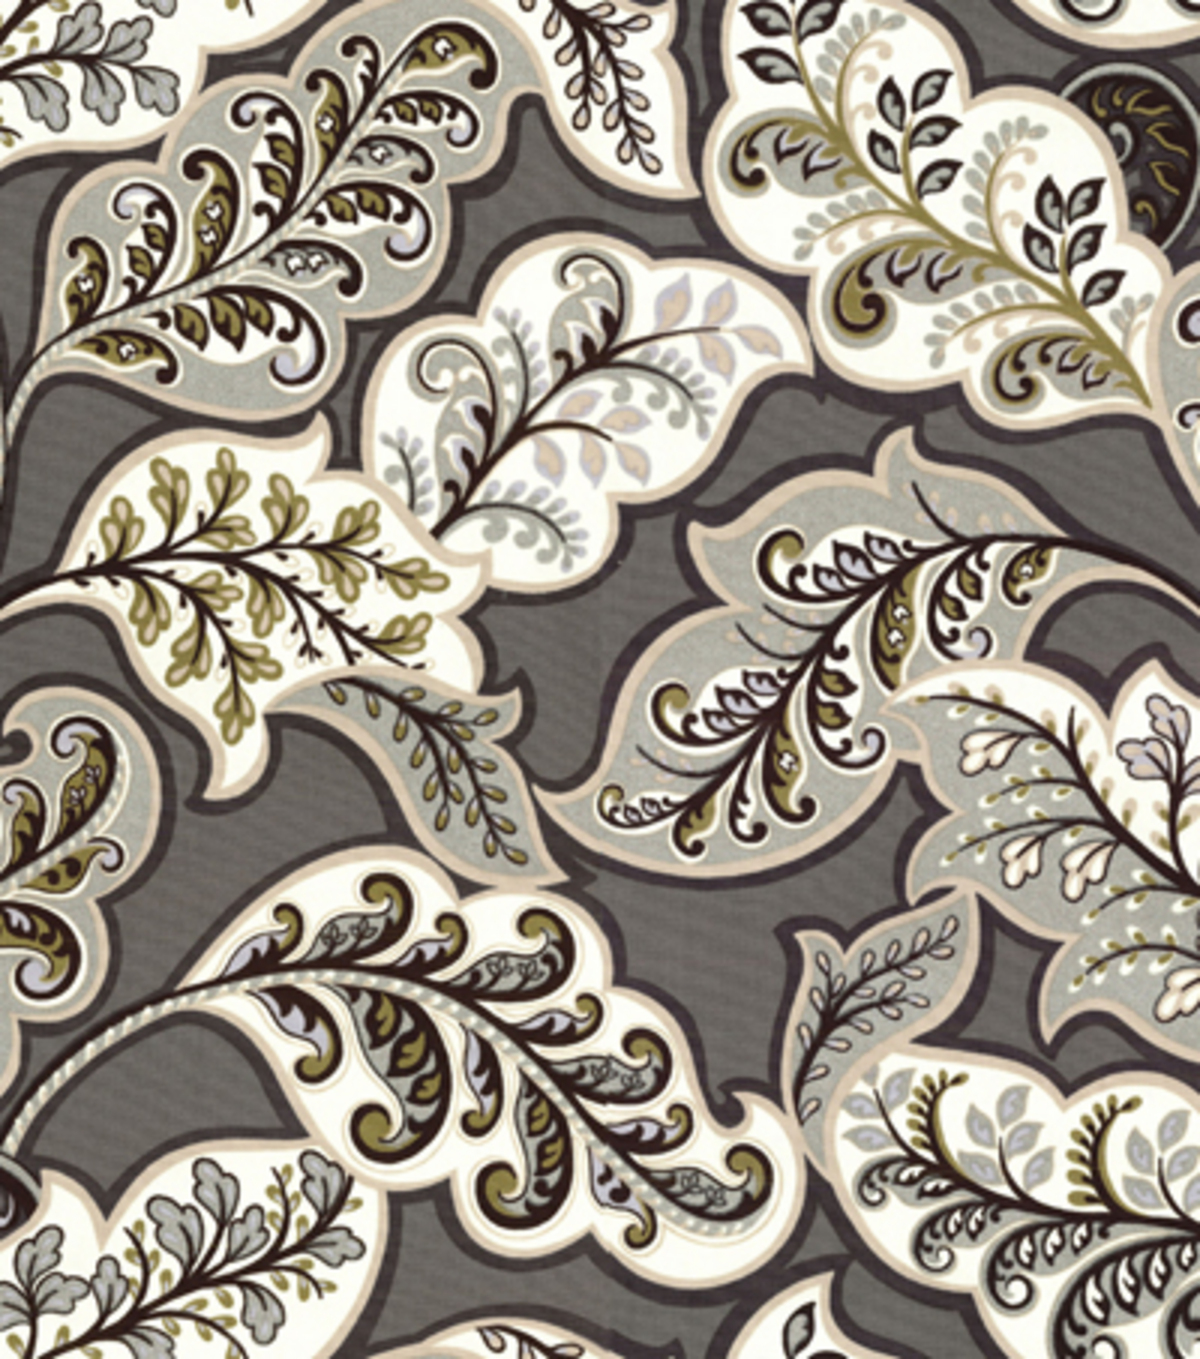 Home Decor 8\u0022x8\u0022 Fabric Swatch-HGTV HOME Deco Drama Zinc